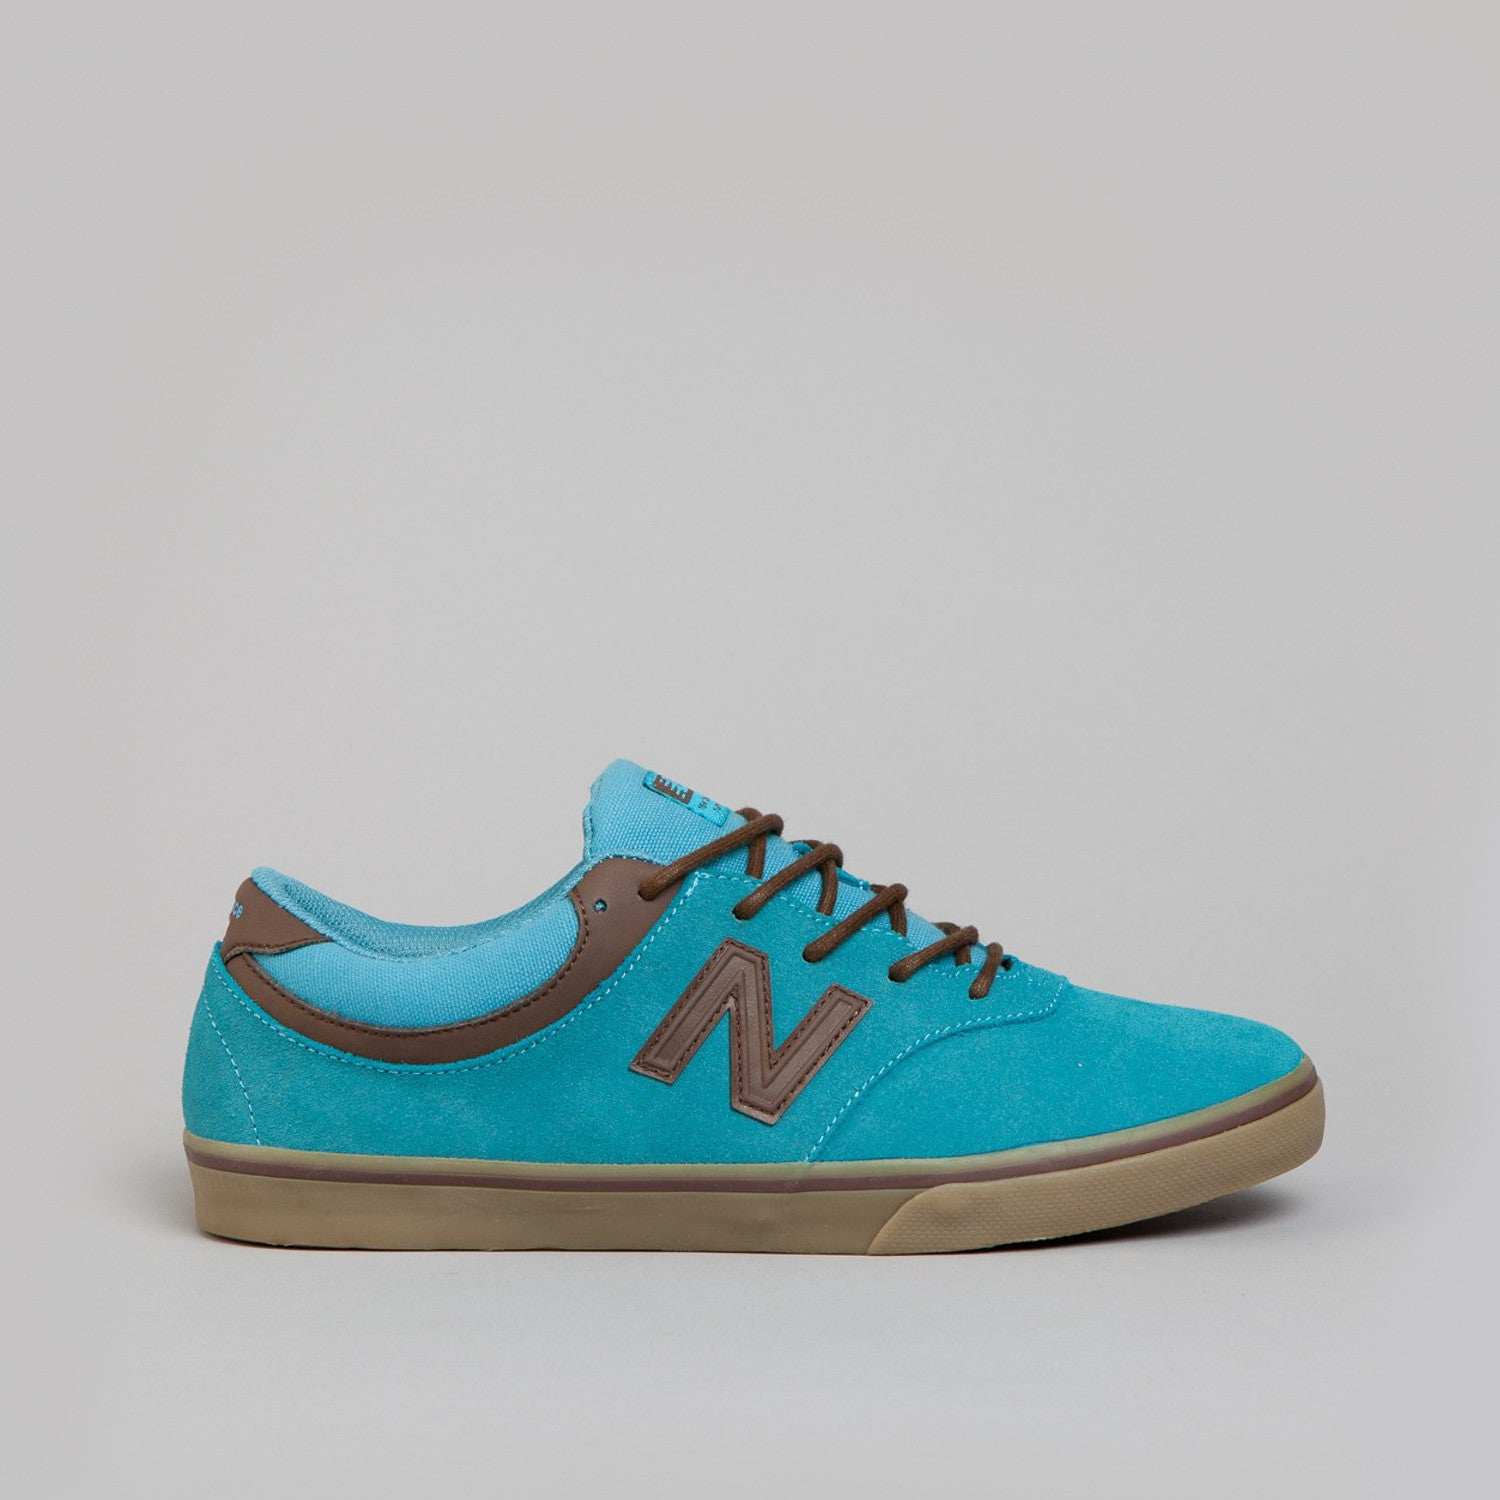 New Balance Numeric Quincy 254 Moon Blue / Gum